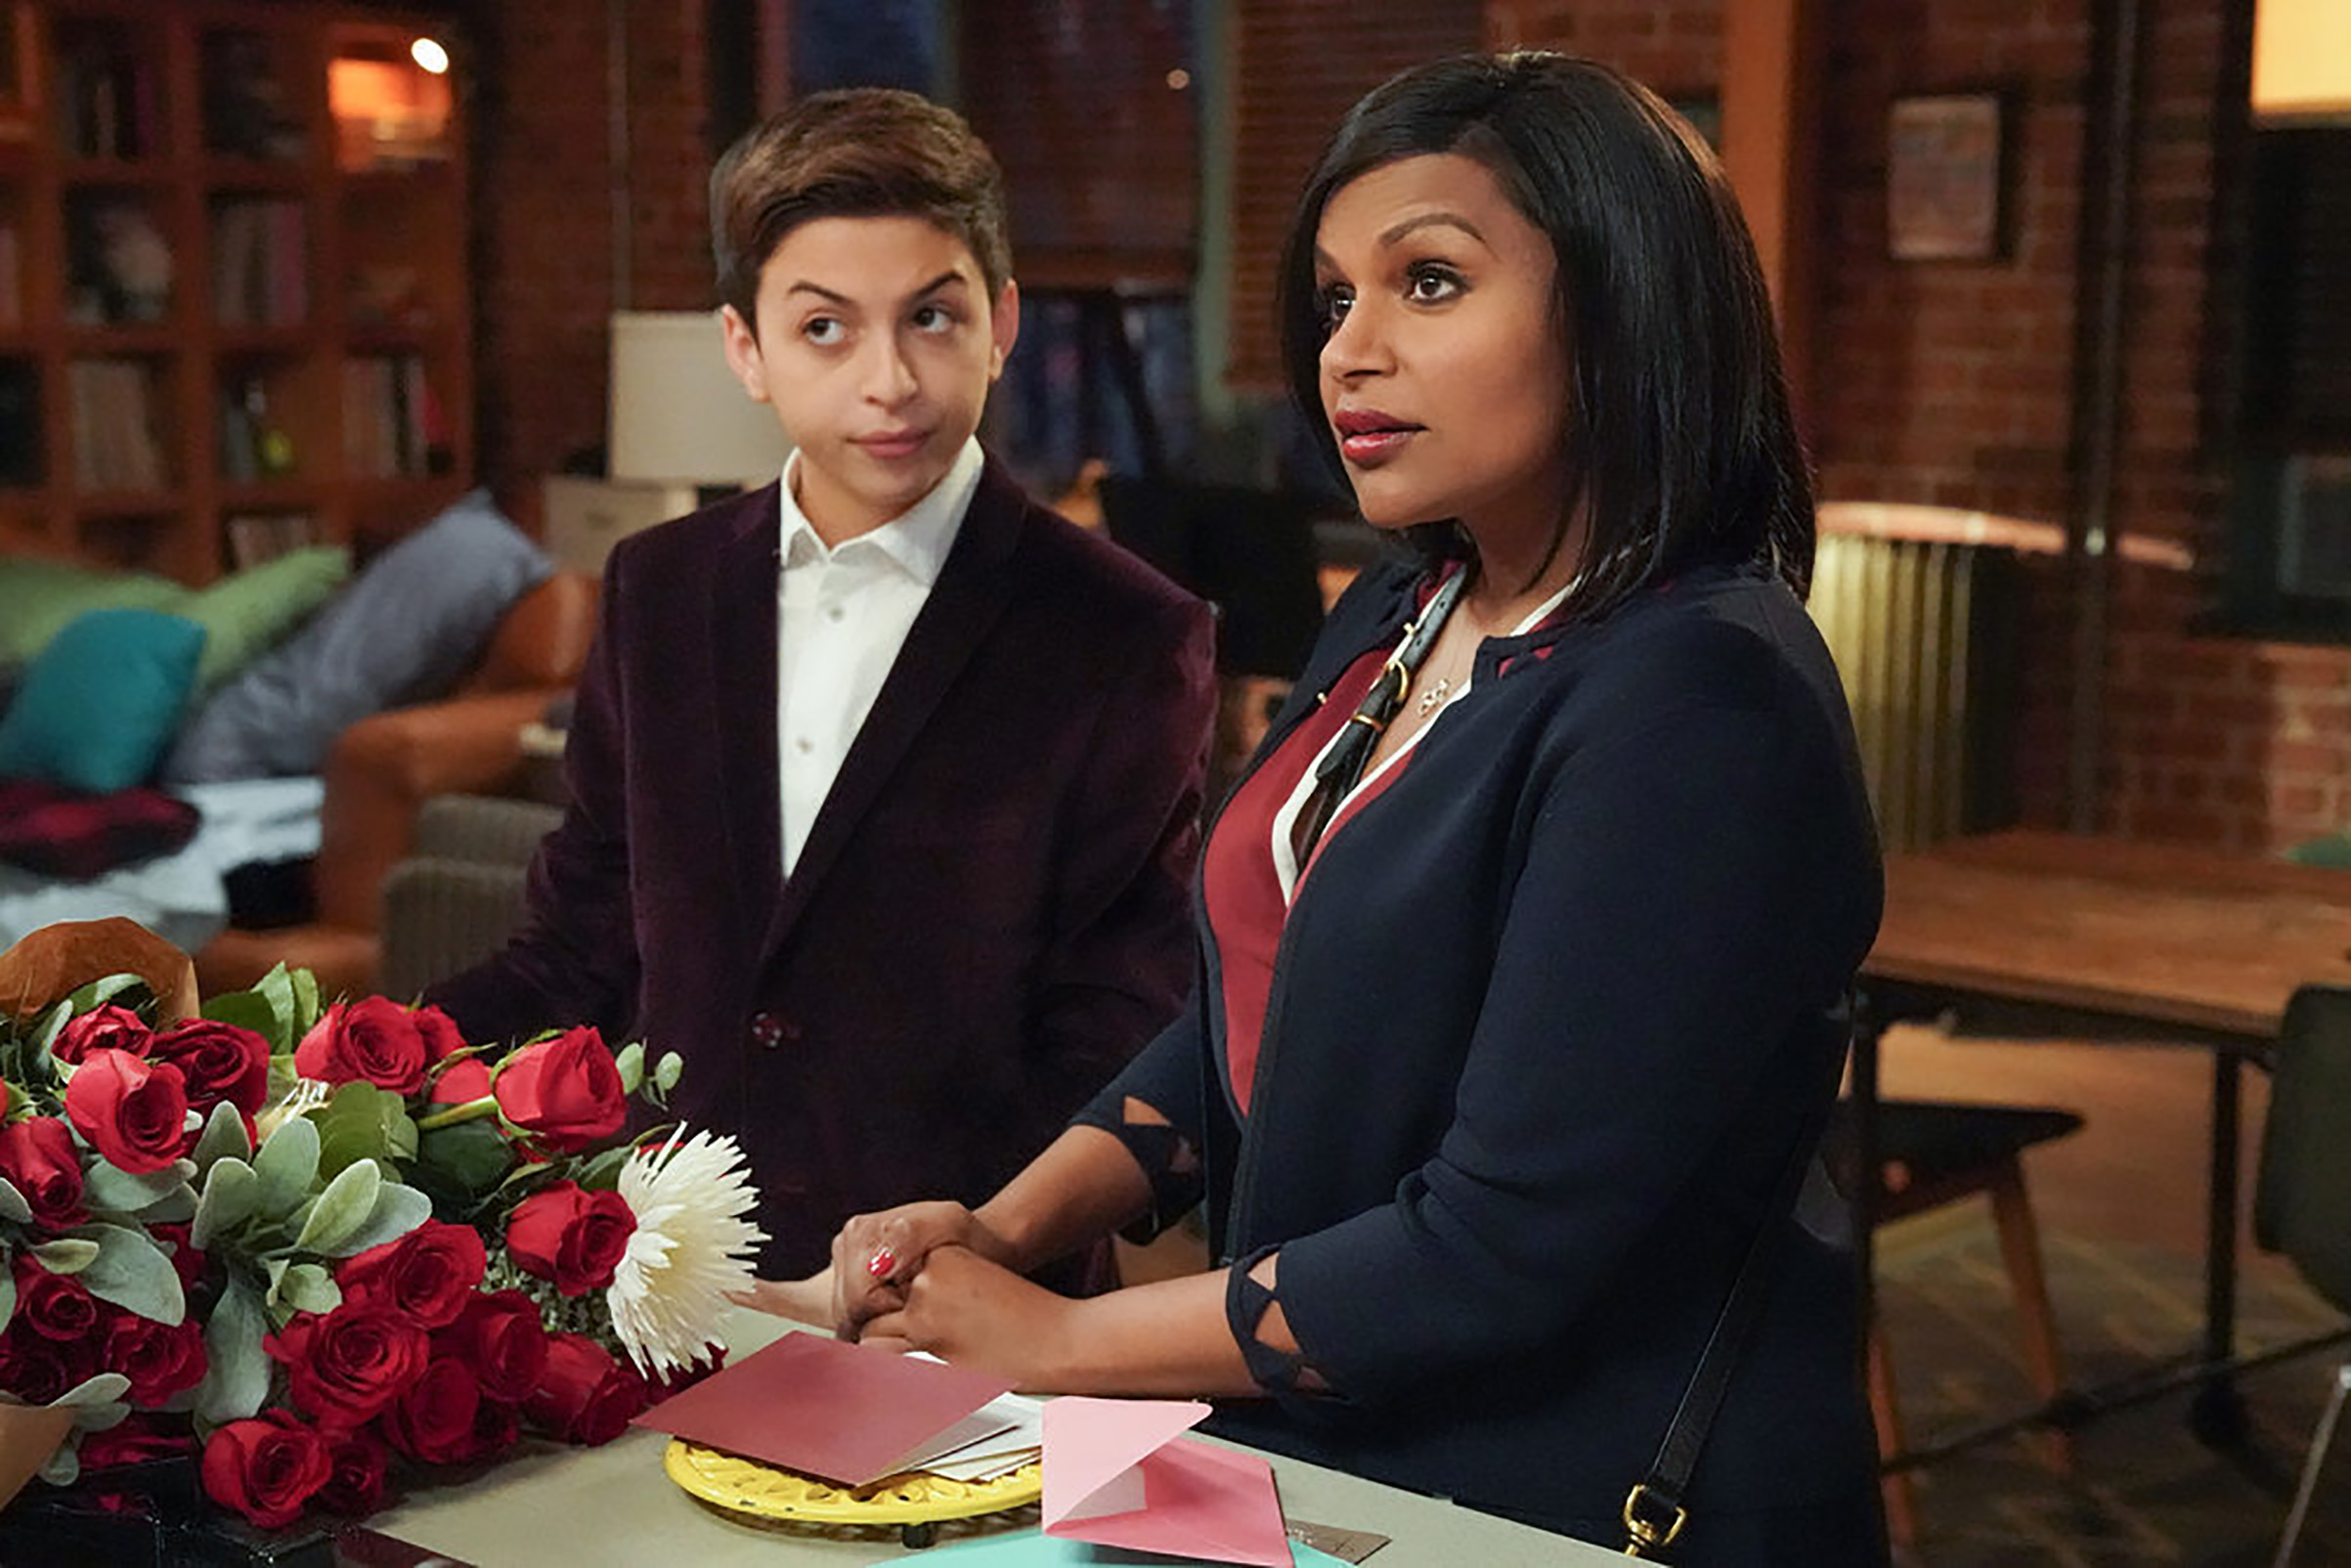 J.J. Totah as Michael and Mindy Kaling as Priya in 'Champions'